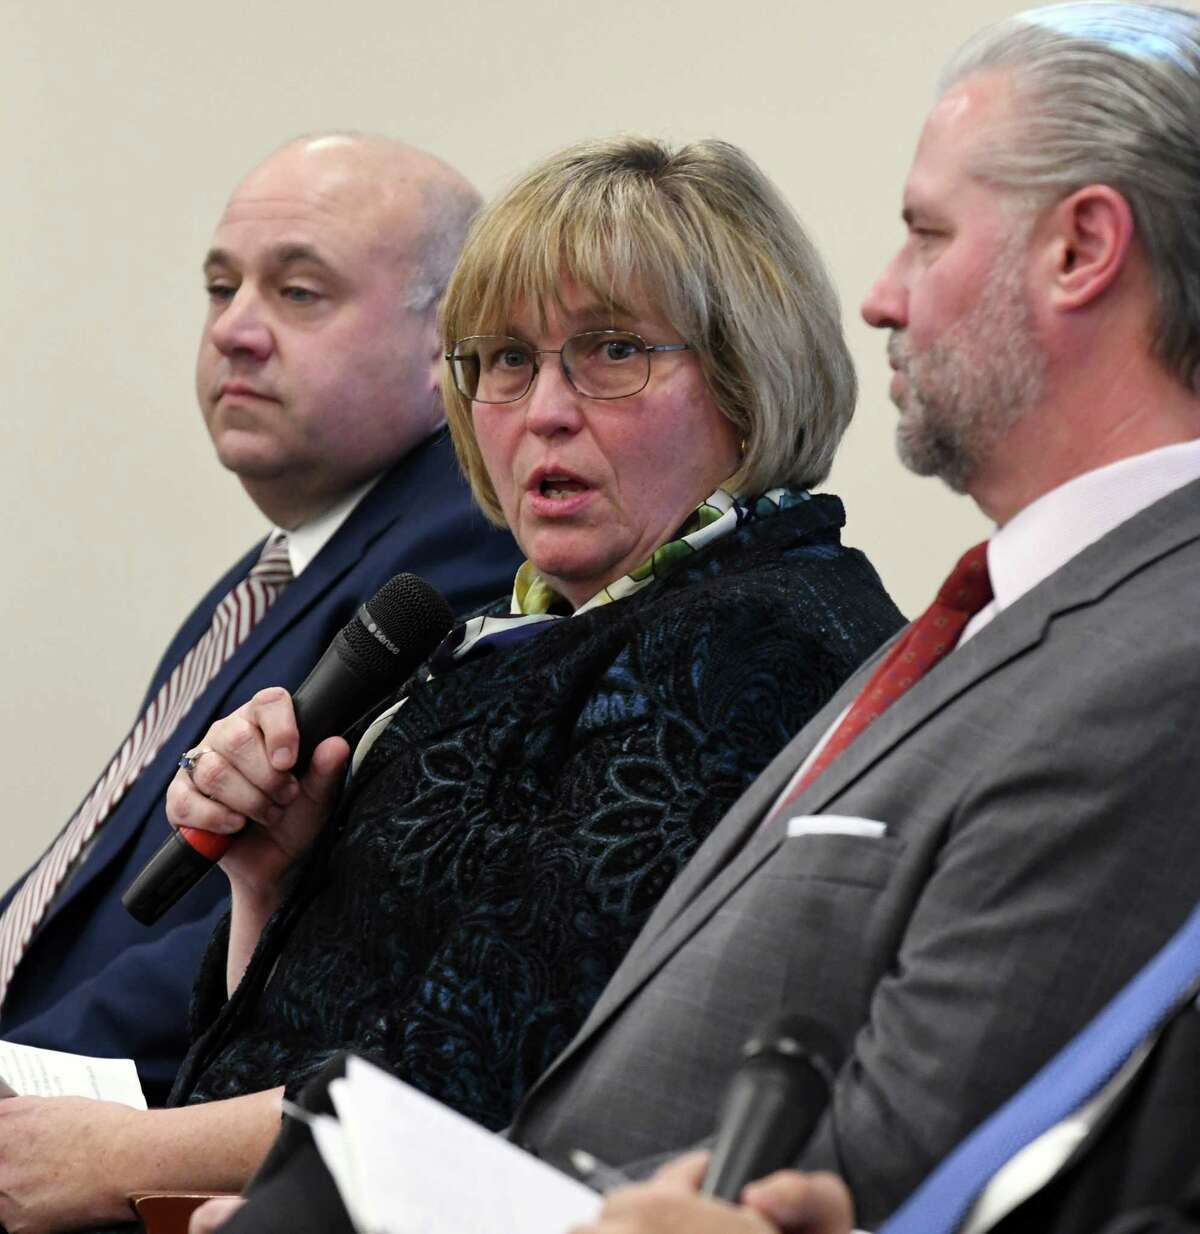 Maria Lehman, former chief operating officer and acting executive director for the New York State Thruway Authority, center, speaks during a forum on the rebuilding needs of the NYS Thruway on Monday, Nov. 26, 2018, in Colonie, N.Y. Joining her are; Michael Fleischer former Thruway authority executive director, left, and Thomas Madison former Thruway Authority executive director, right. (Will Waldron/Times Union)